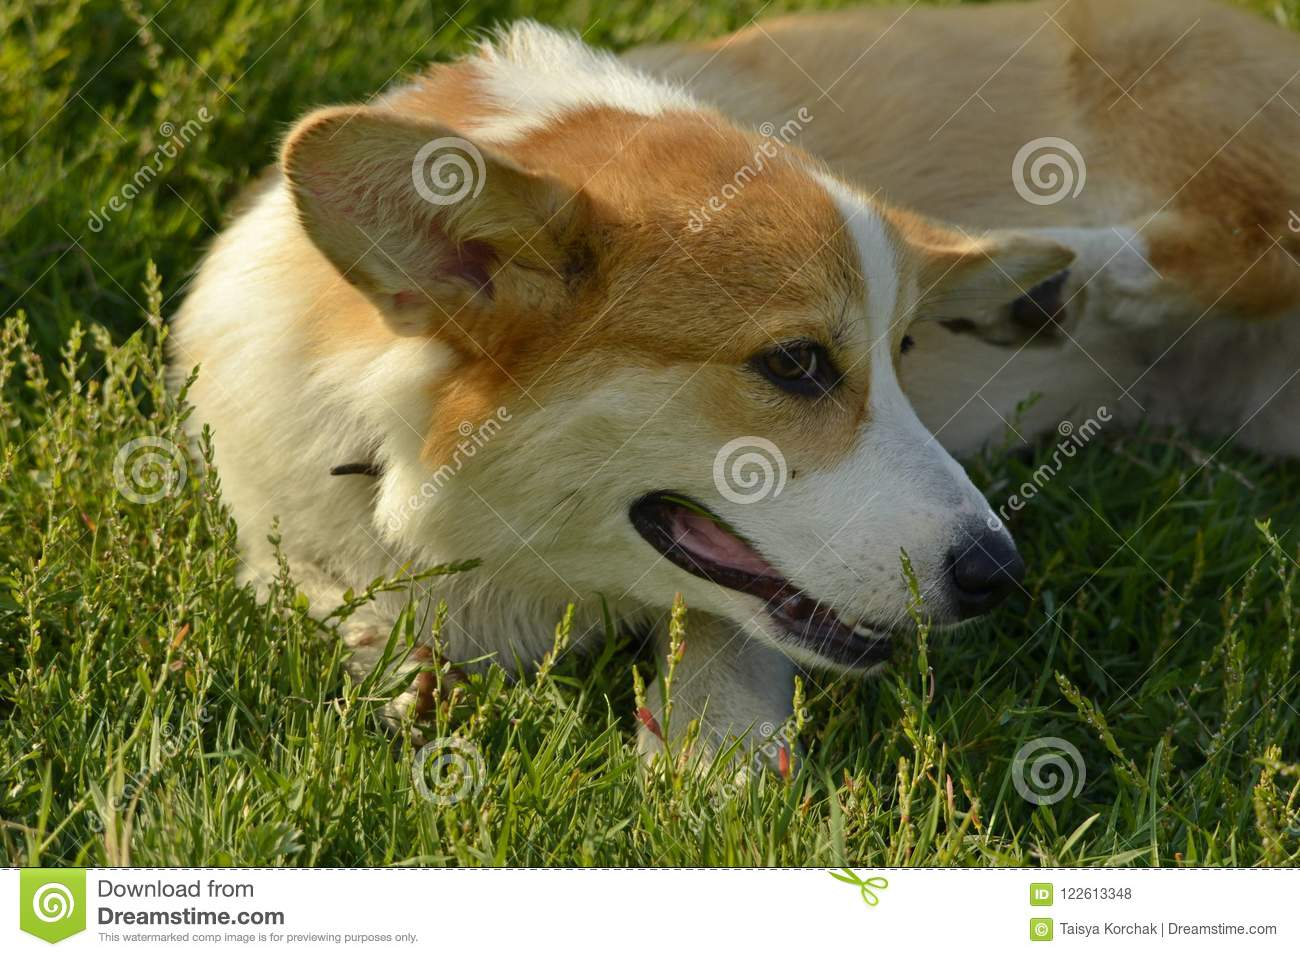 Image of: Training Puppy Corgi Pembroke On Walk Young Energetic Dog On Walk Puppies Education Cynology Intensive Training Of Young Dogs Walking Dogs In Nature Daily Express Puppy Corgiyoung Energetic Dog On Walk Puppies Education